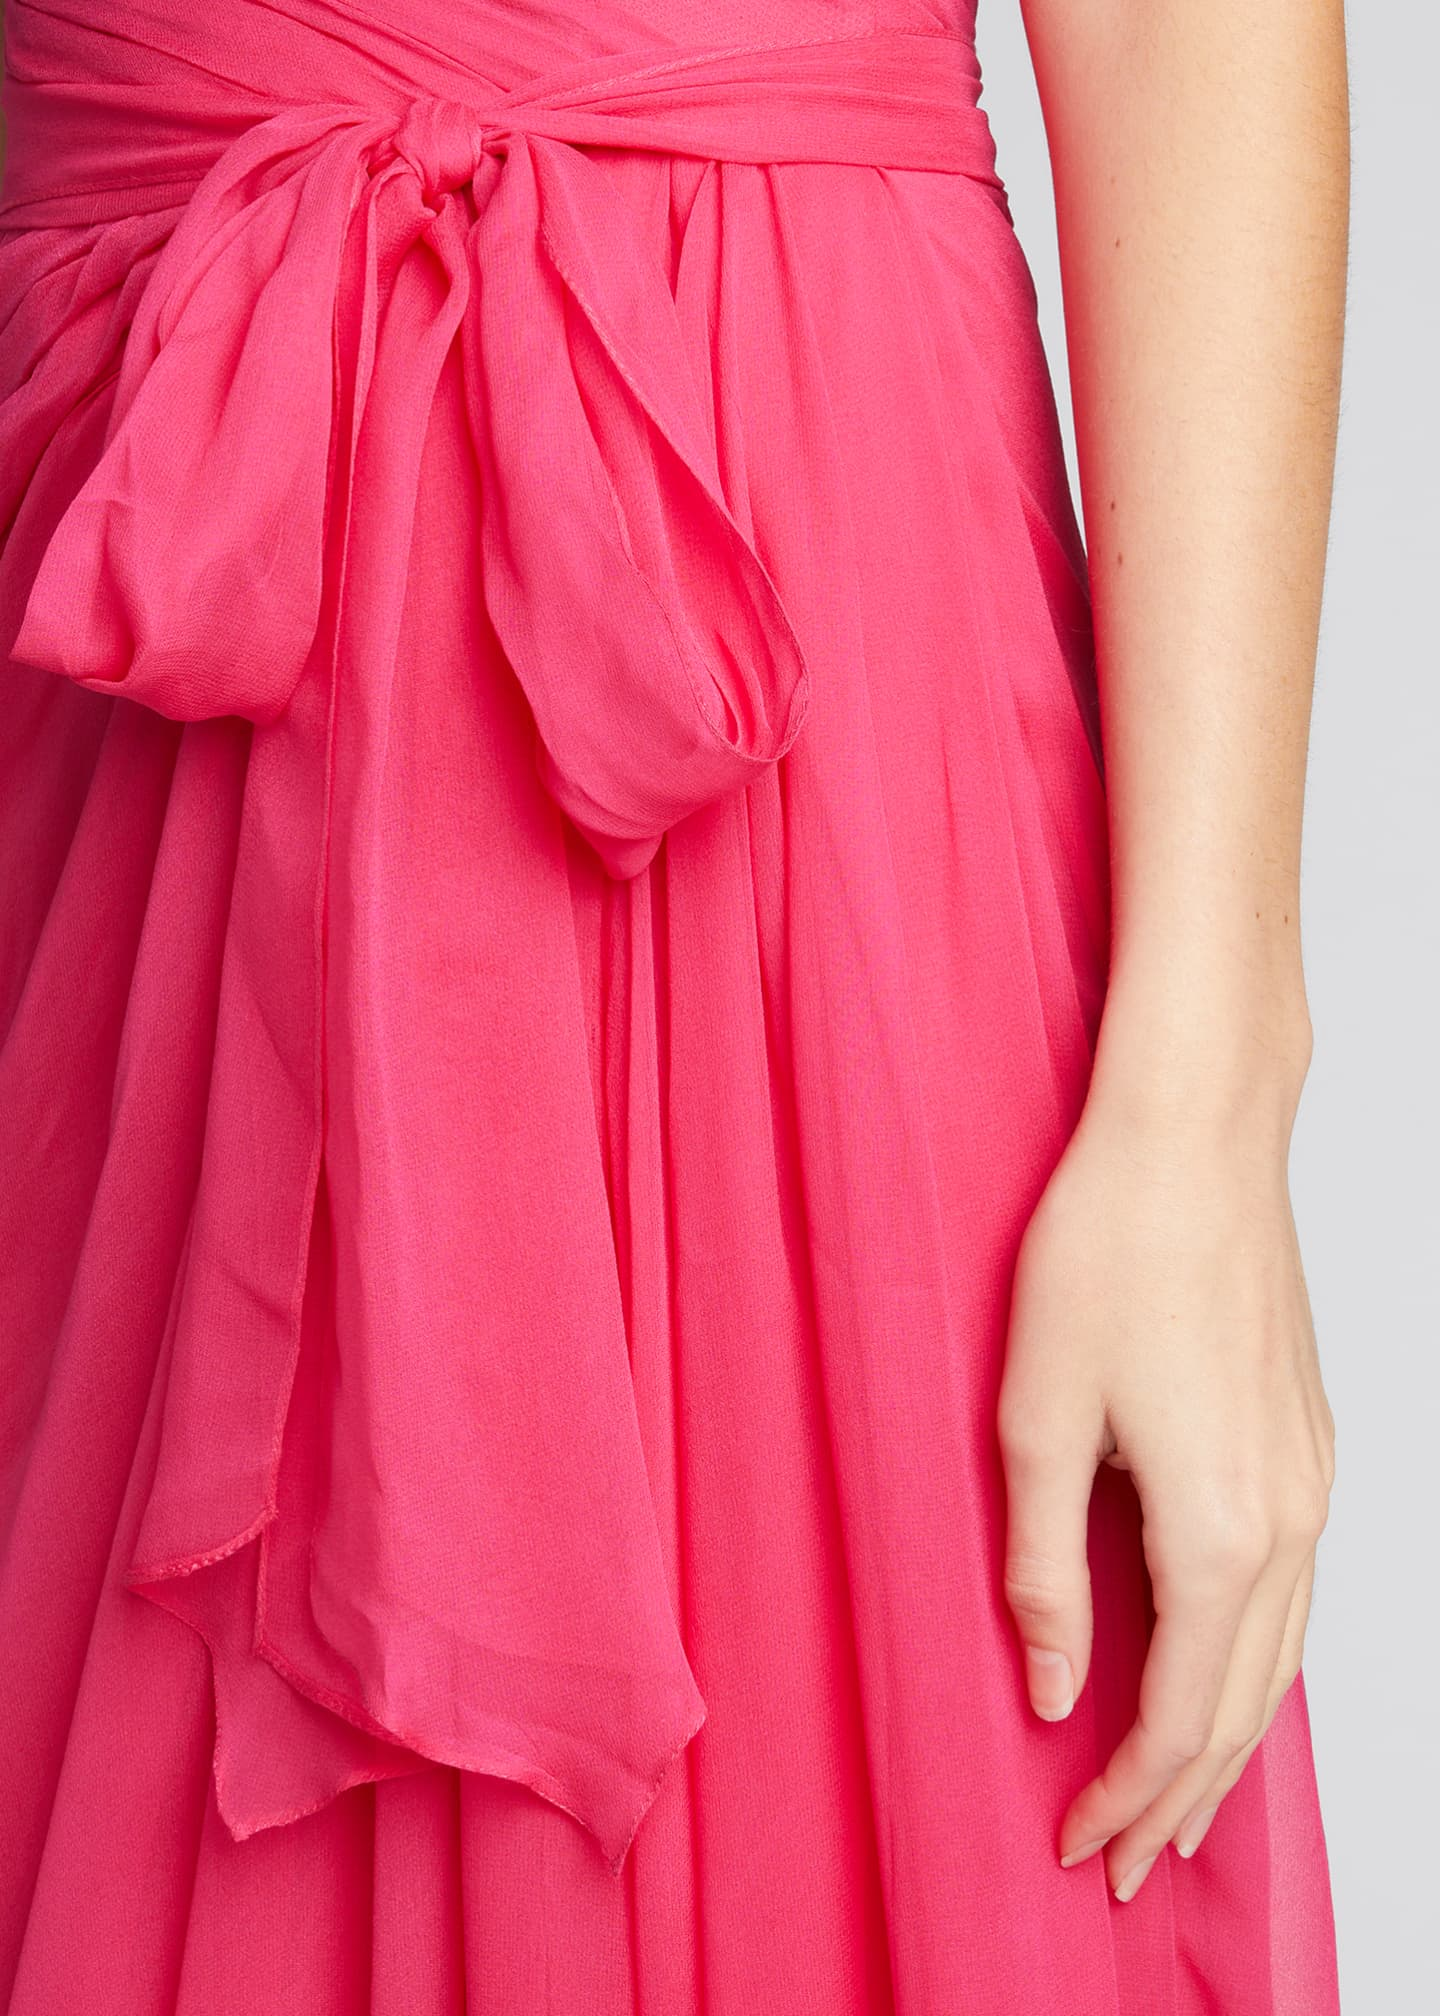 Image 4 of 5: Sweetheart Strapless Chiffon Gown